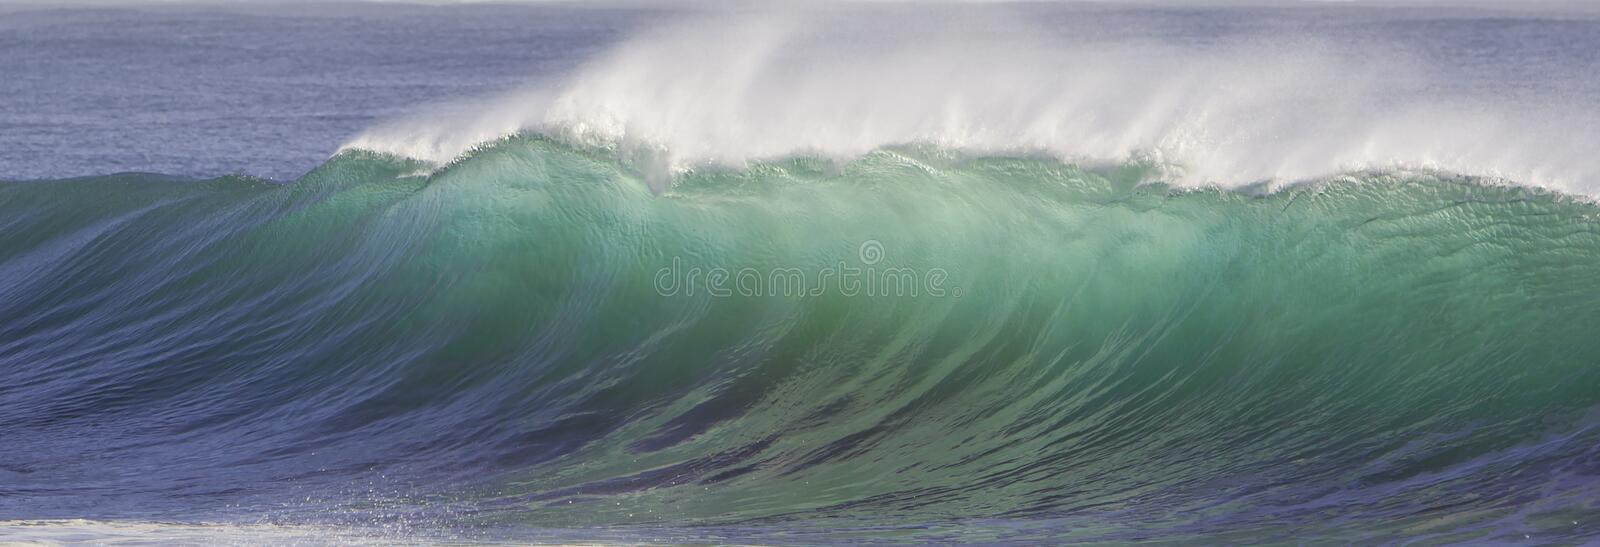 Download Vague de rupture photo stock. Image du onde, plage, surf - 45371728